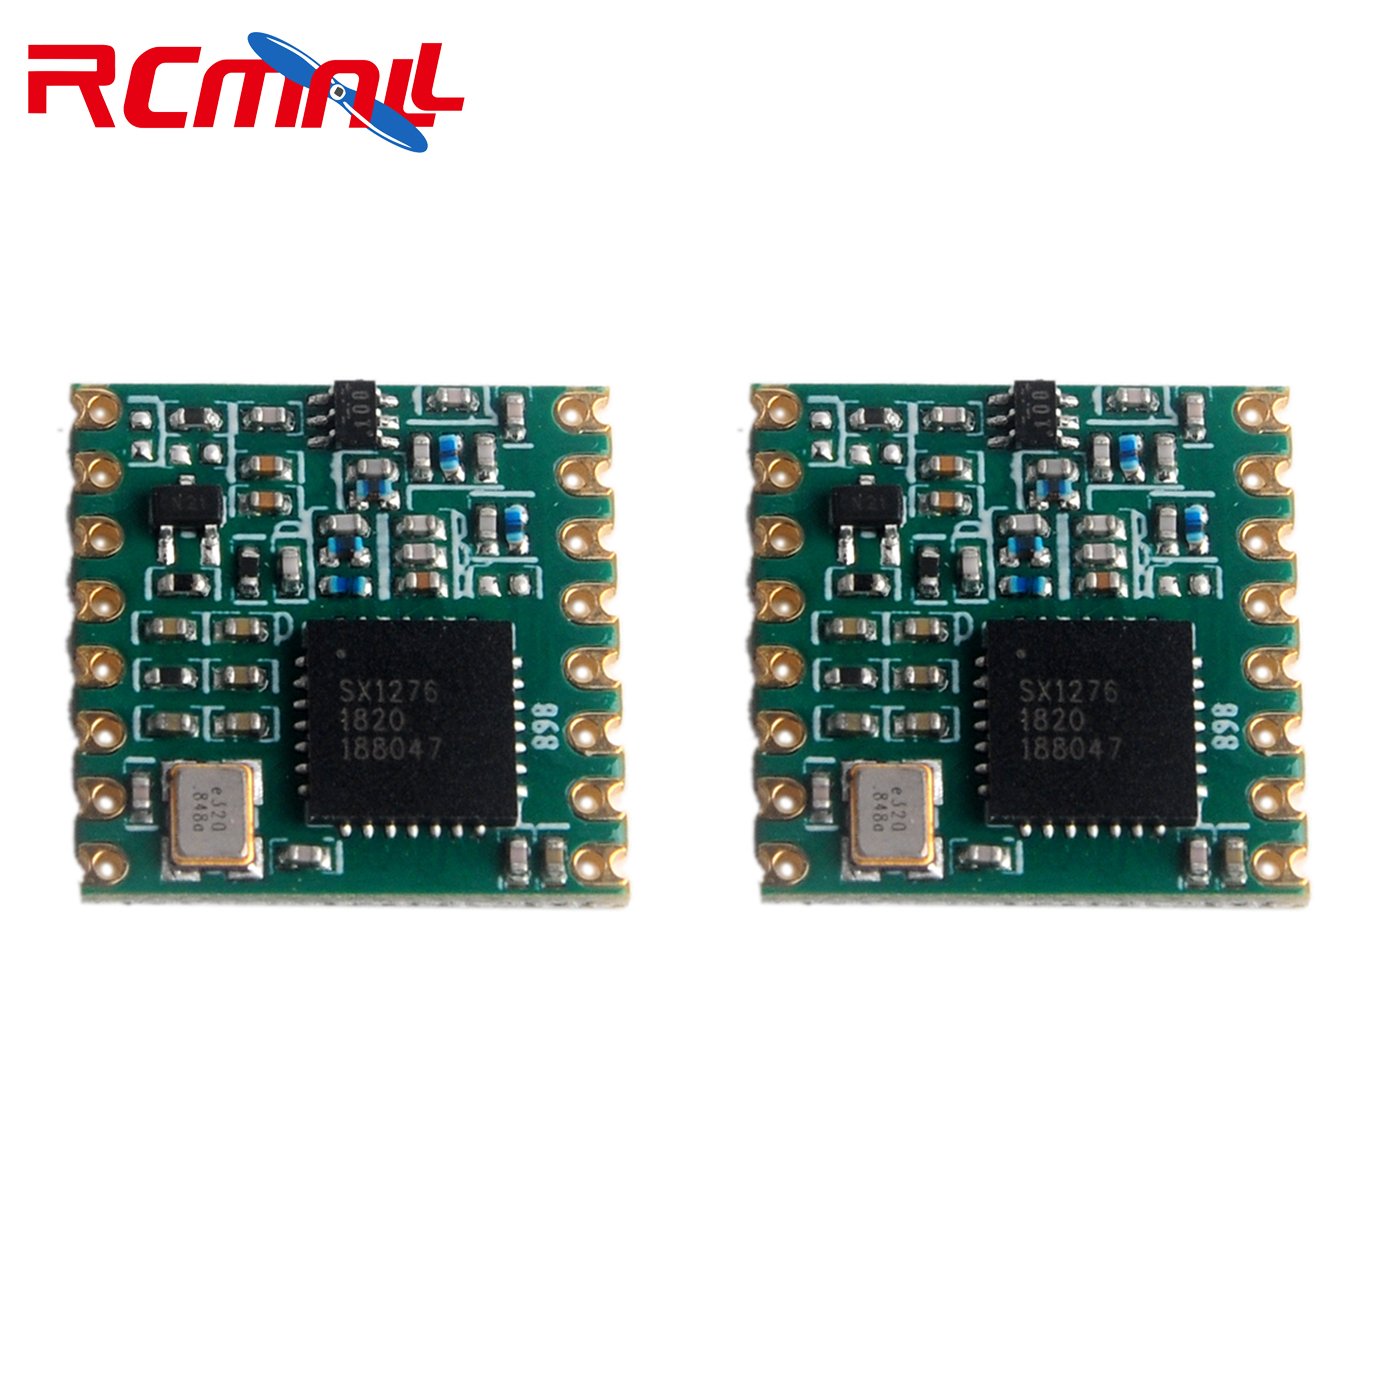 2pcs/lot 868MHz RF LoRa Module SX1276 Chip RFW95 Long-Distance Communication Receiver And Transmitter FZ3020-lora